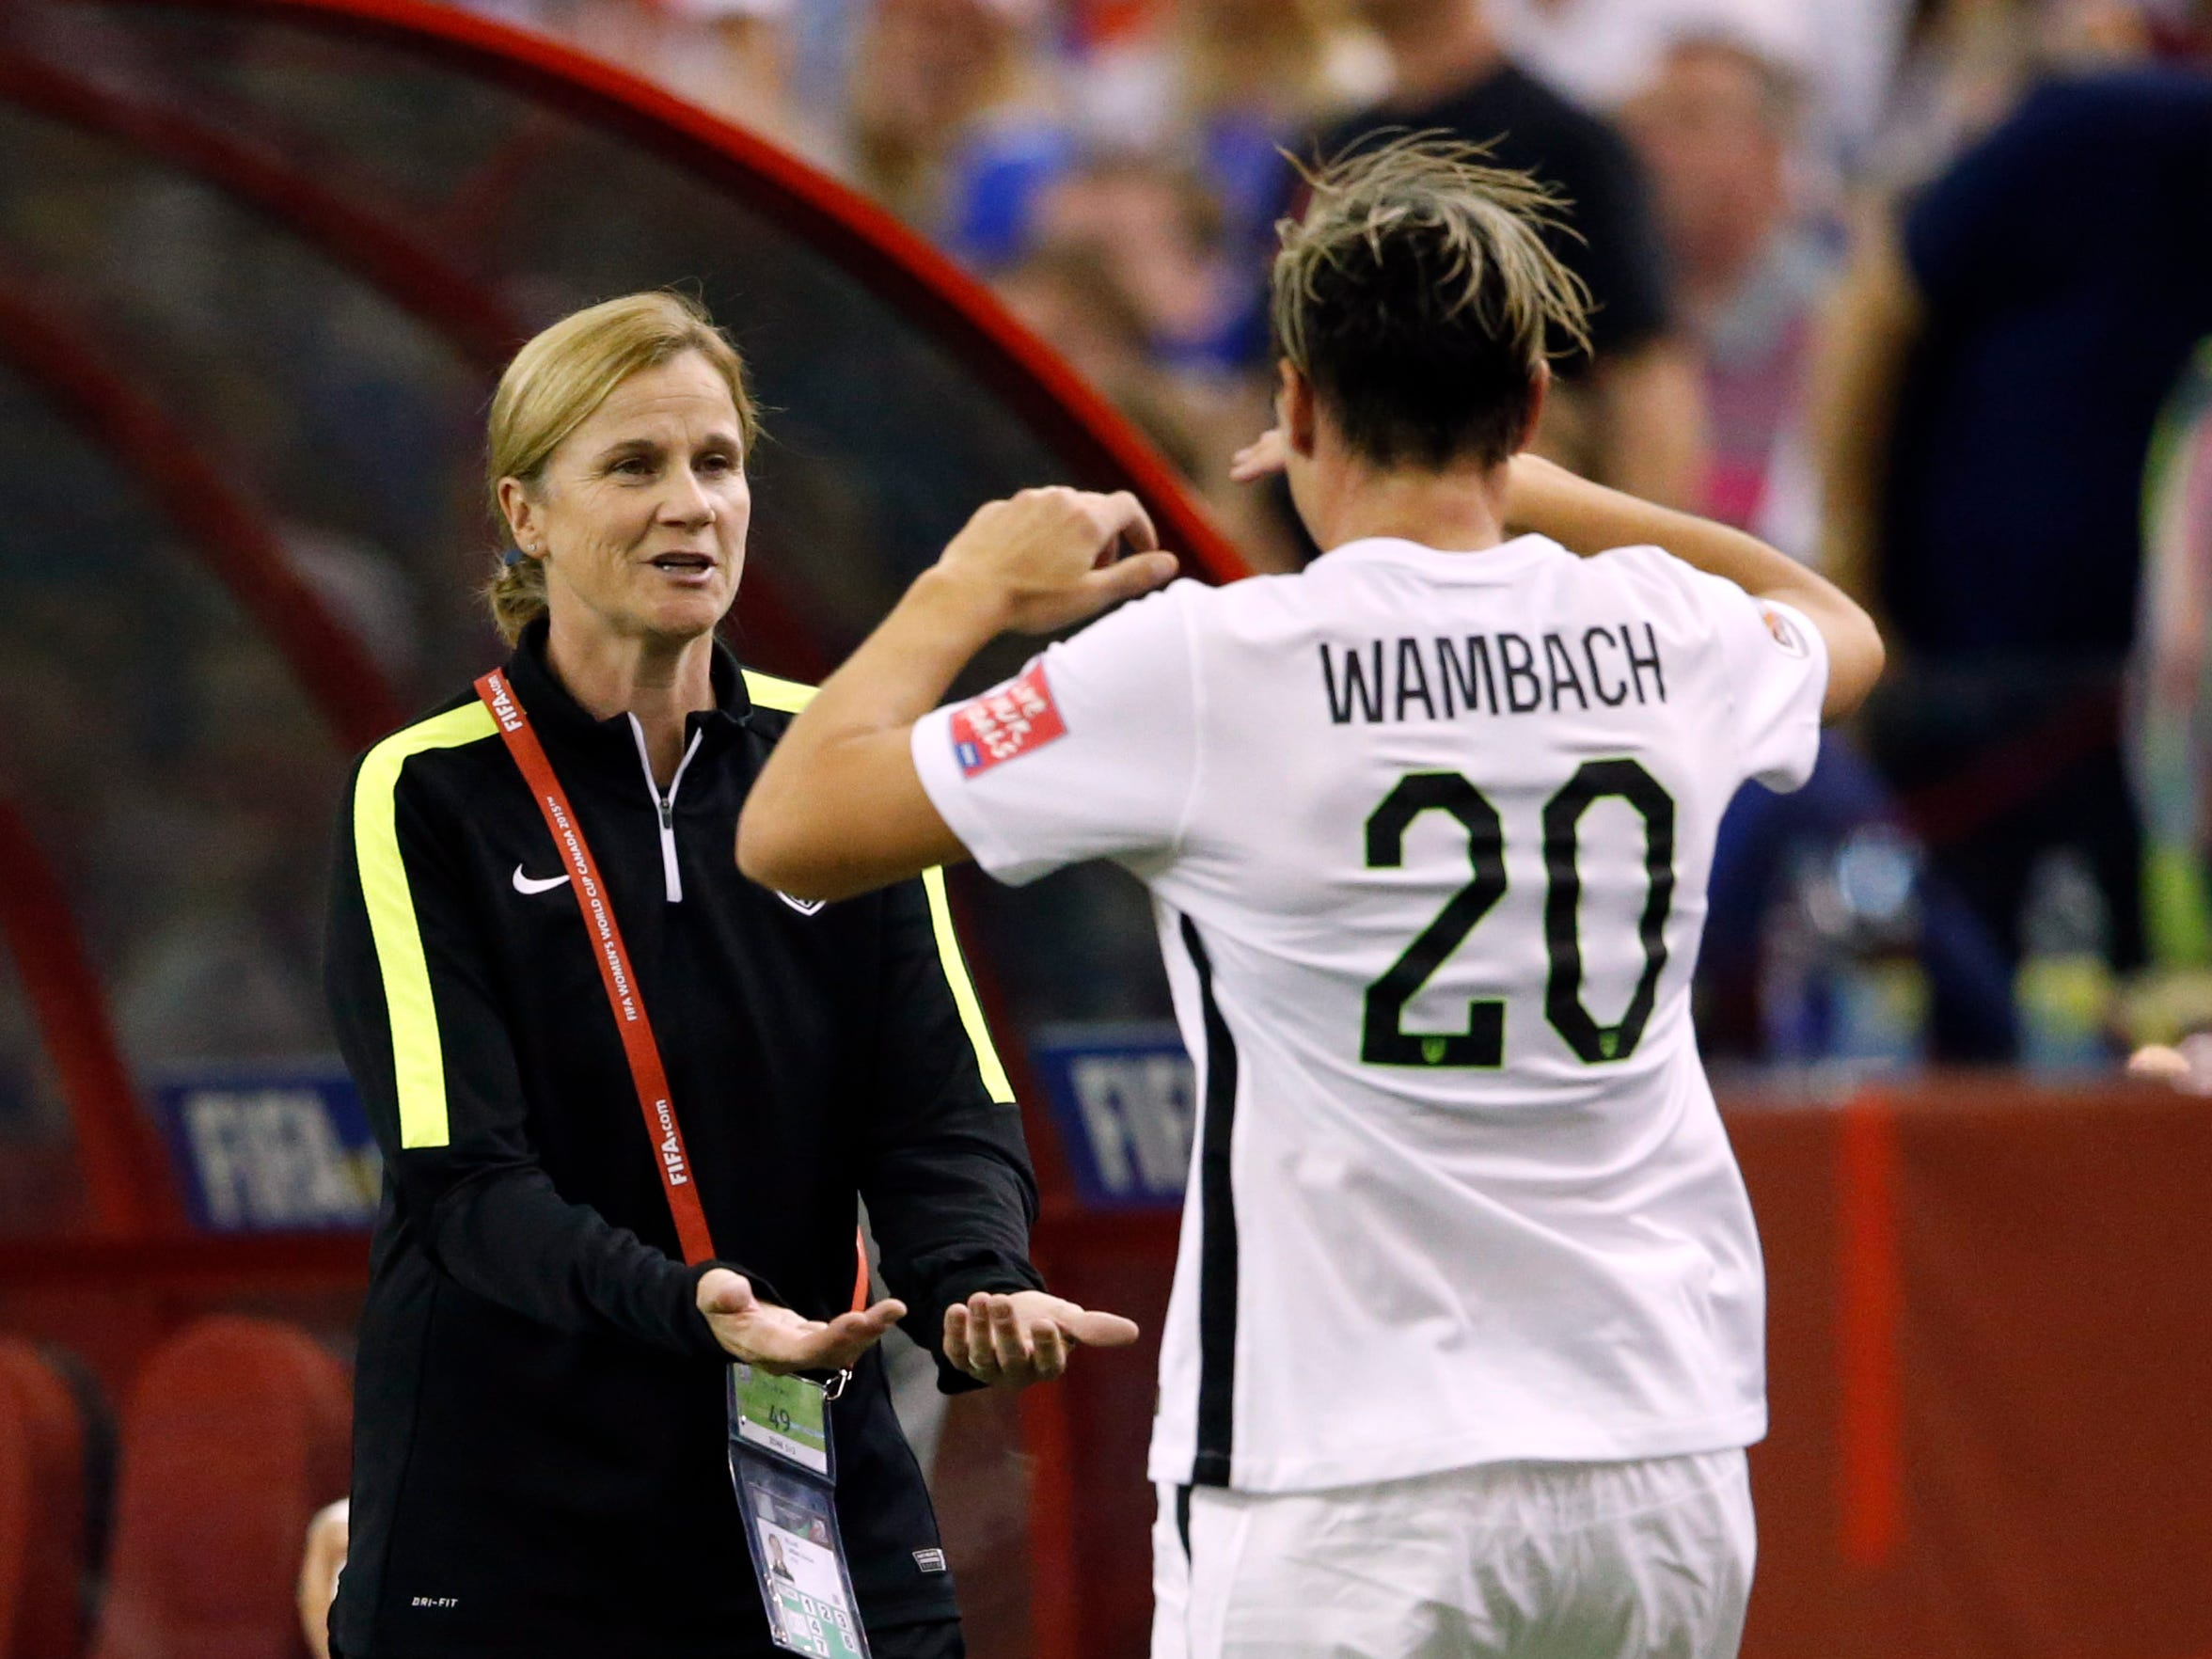 U.S. soccer coach Jill Ellis, left, and star player Abby Wambach, right, are both open lesbians in a sport that fosters inclusive culture.